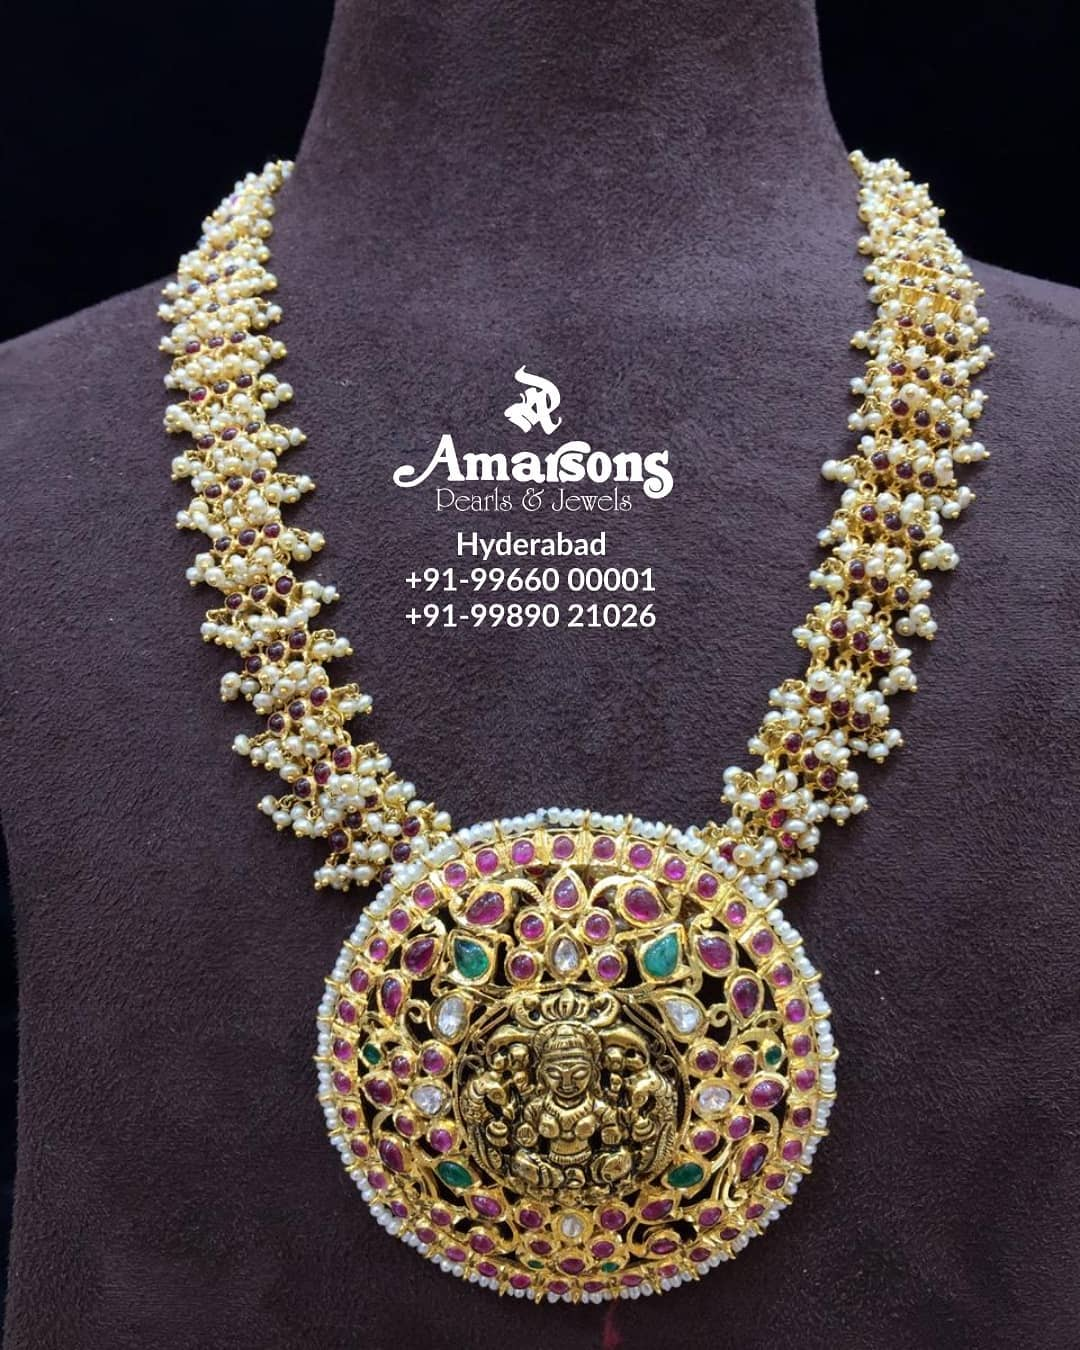 Classy Gold Temple Necklace From Amarsons Pearls and Jewels